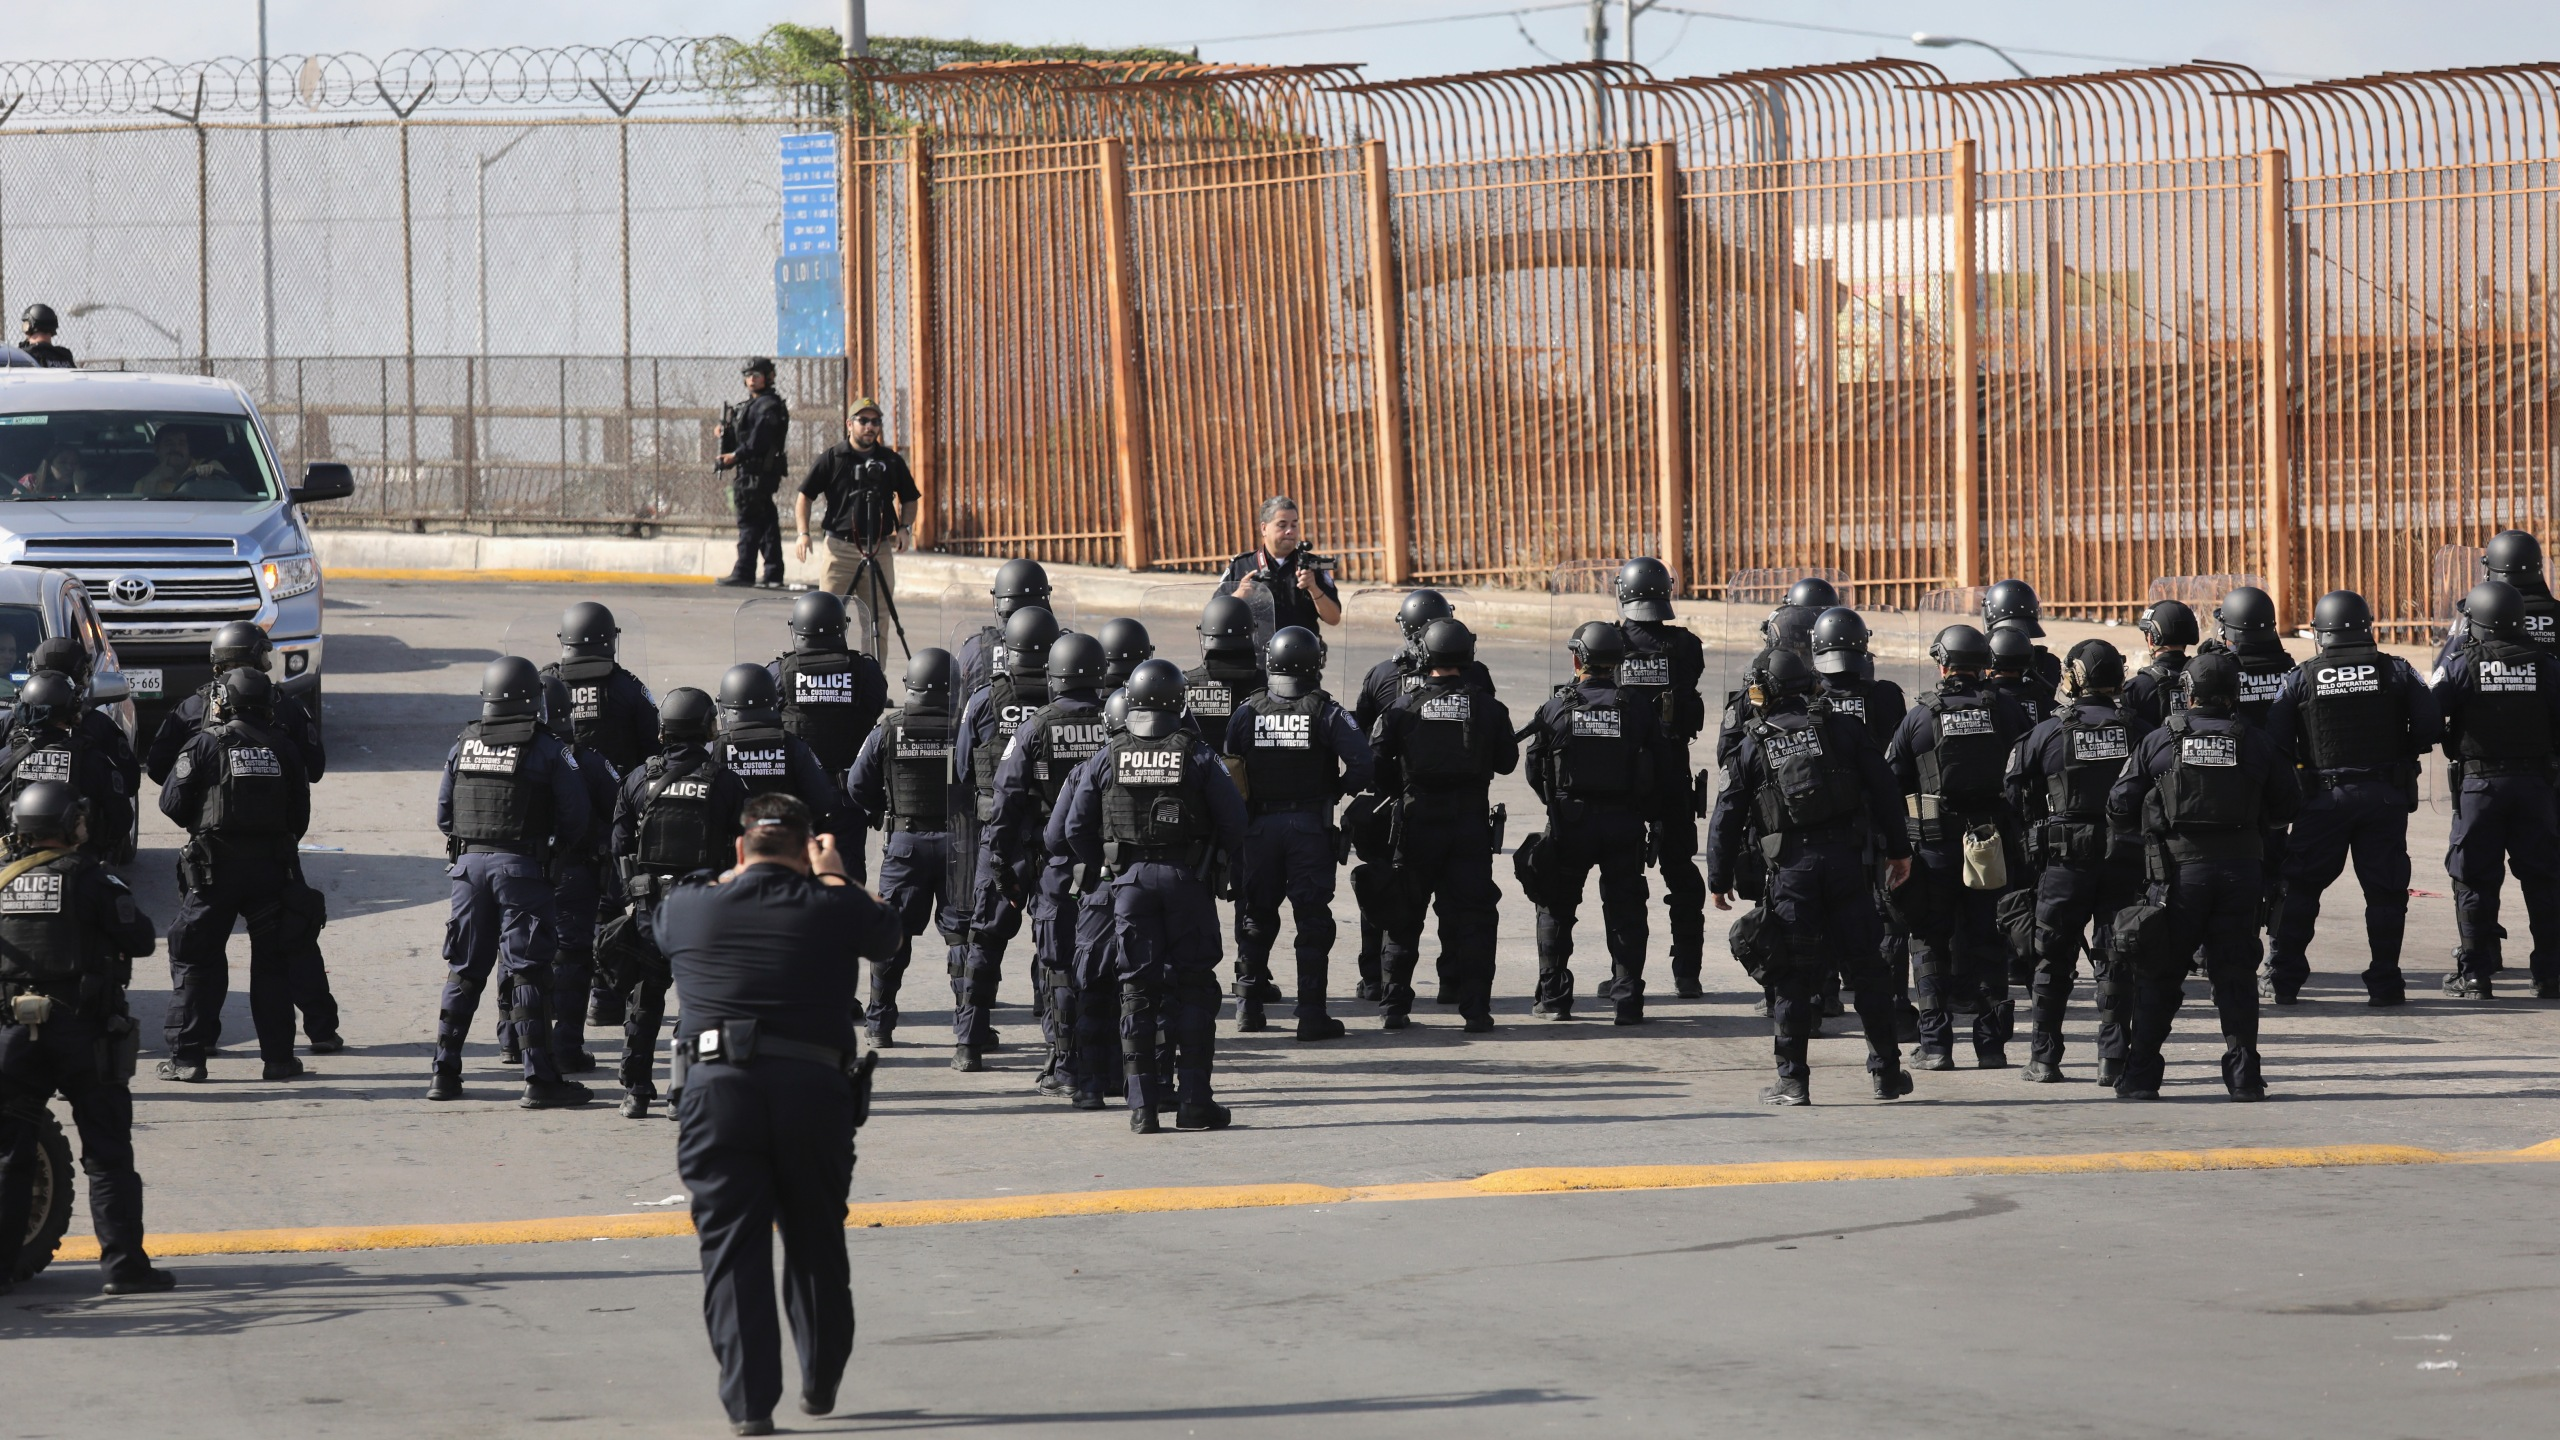 """U.S. Customs and Border Protection agents take part in a training exercise at the U.S.-Mexico border on Nov. 5, 2018 in Hidalgo, Texas. Days before, U.S. Army soldiers put up razor wire at the same port of entry as part of """"Operation Faithful Patriot."""" President Donald Trump ordered troops to the border ahead of midterm elections and weeks before the possible arrival of a migrant caravan. (Credit: John Moore/Getty Images)"""